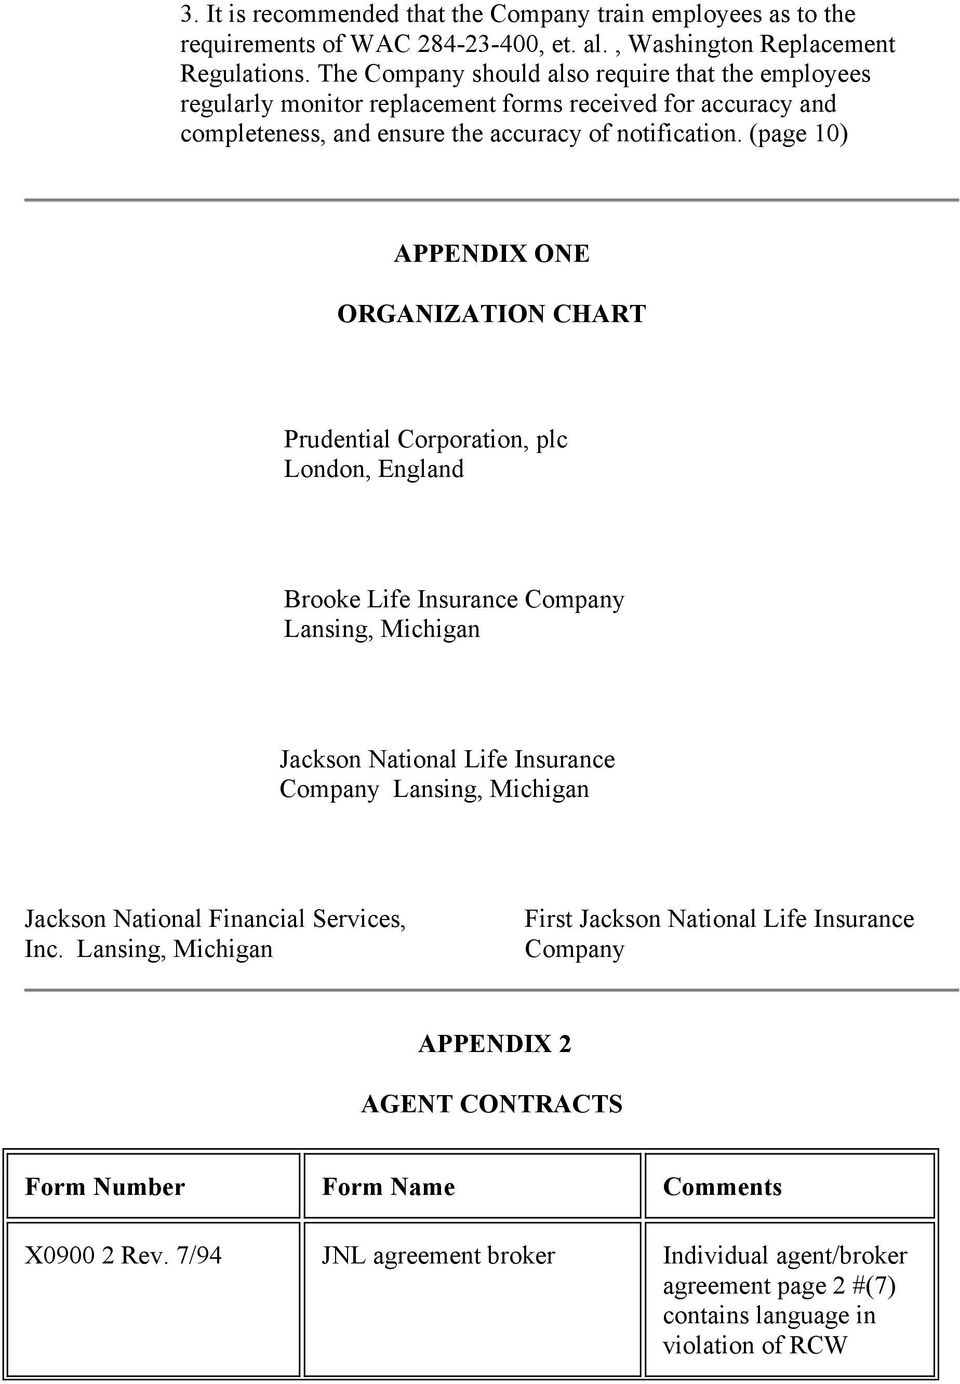 (page 10) APPENDIX ONE ORGANIZATION CHART Prudential Corporation, plc London, England Brooke Life Insurance Company Lansing, Michigan Jackson National Life Insurance Company Lansing, Michigan